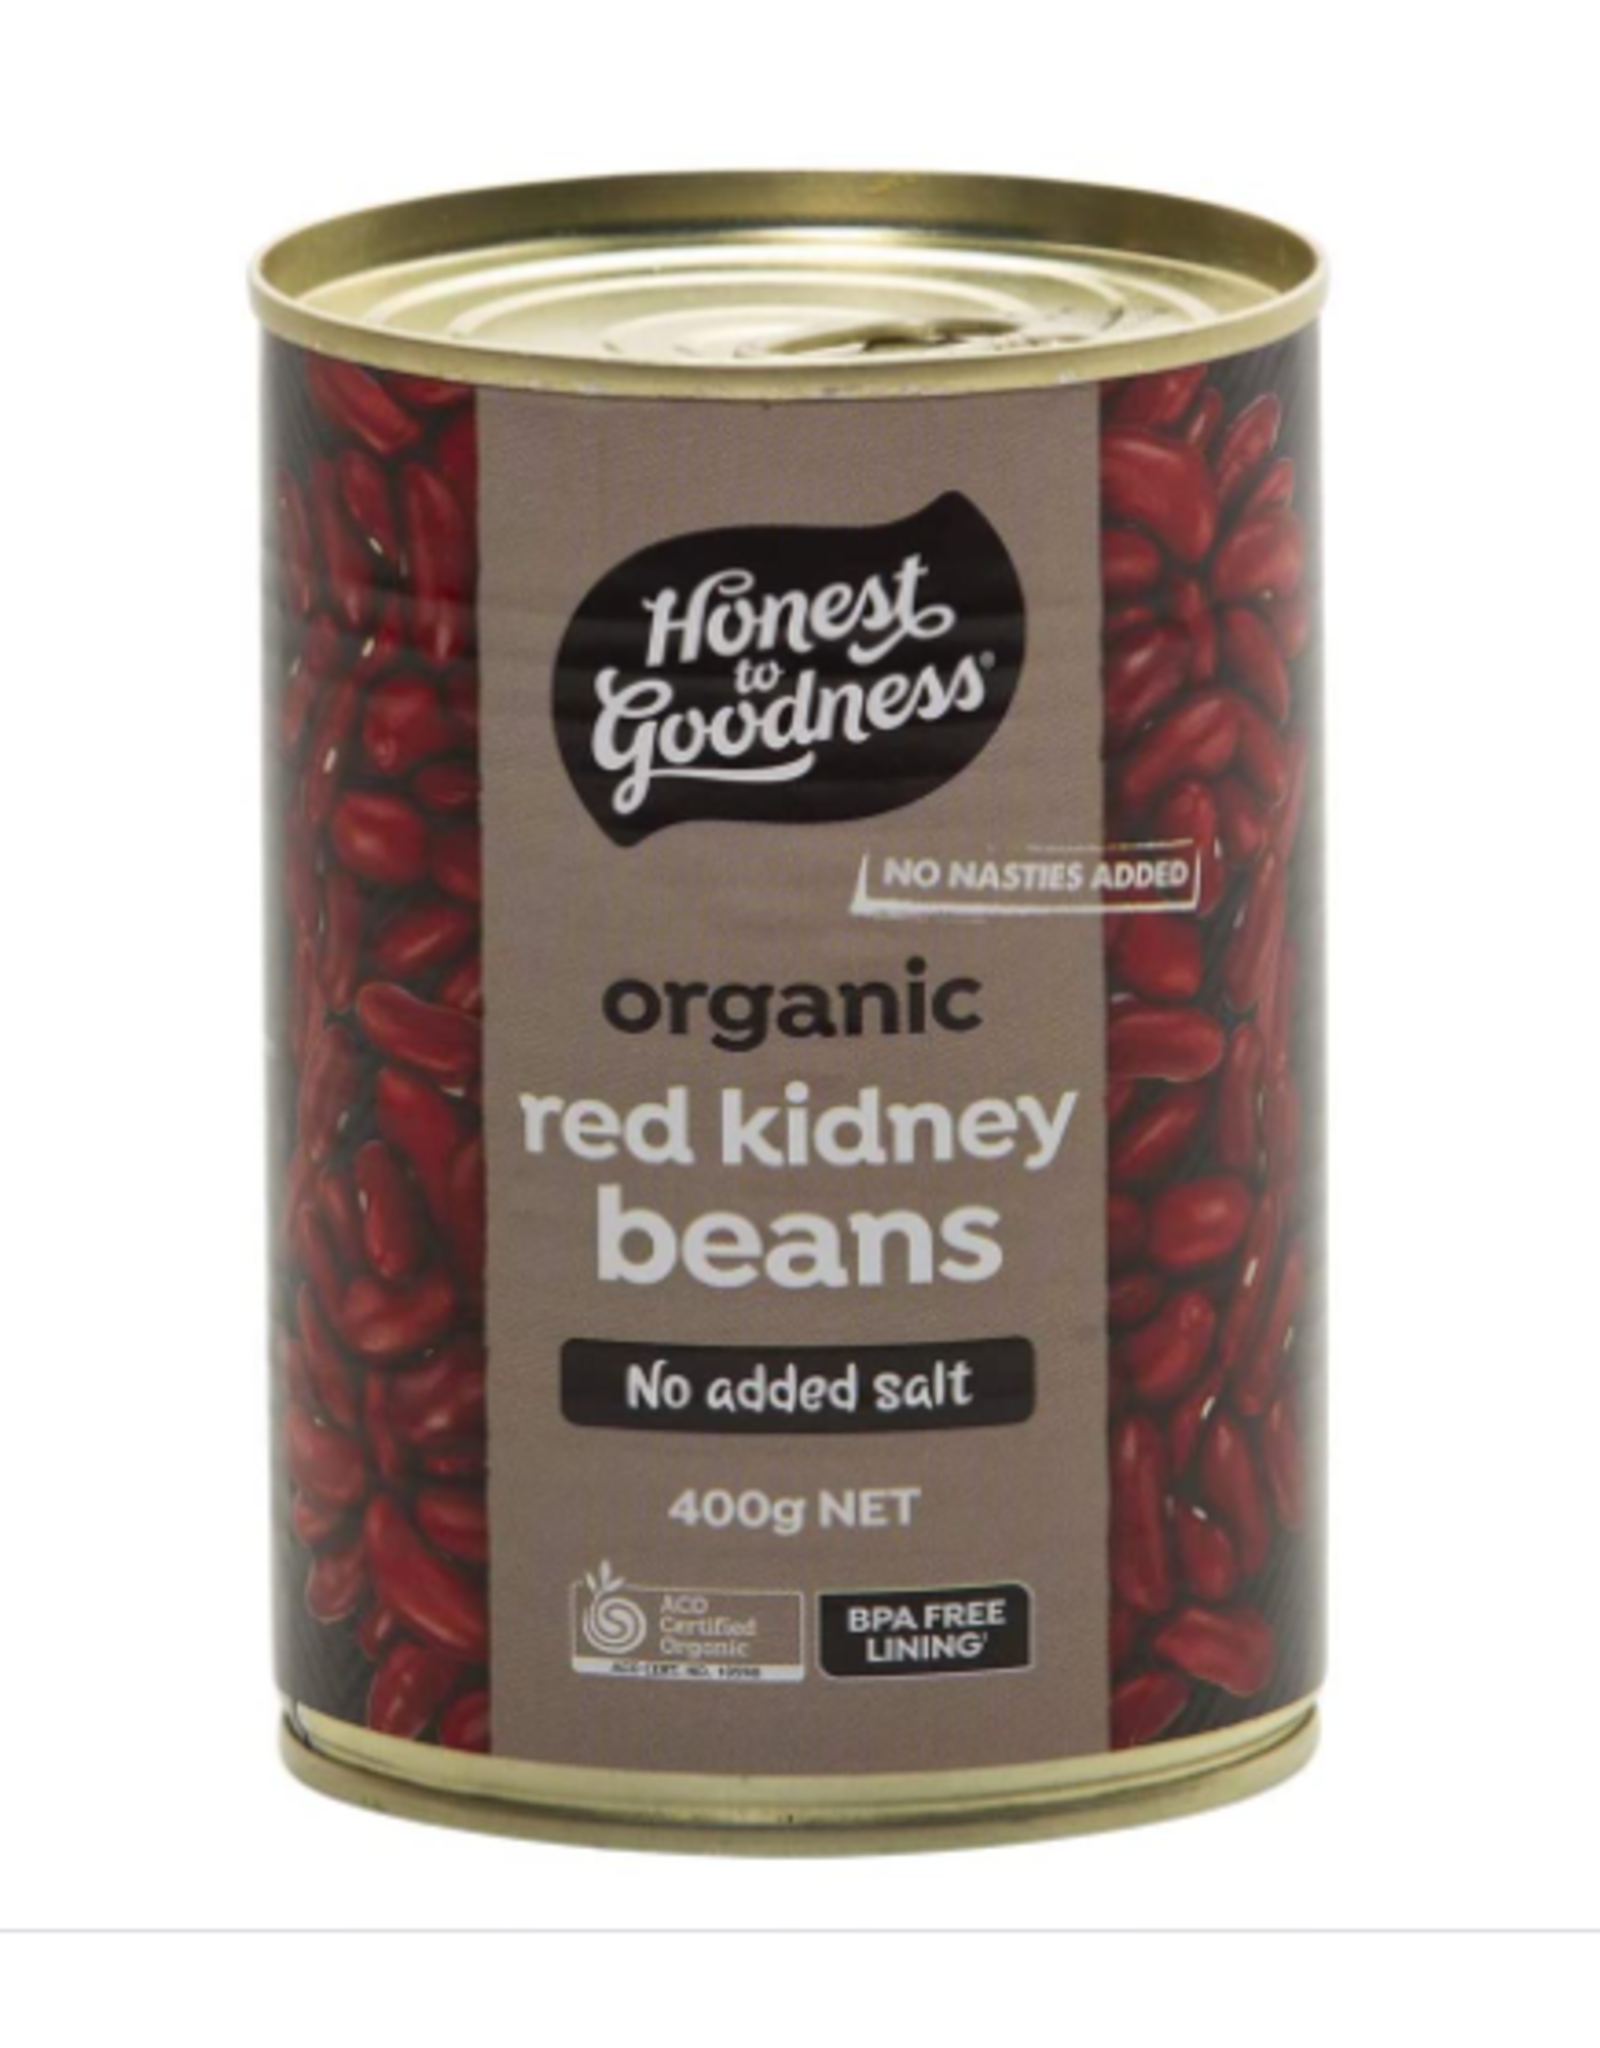 Honest To Goodness Canned Red Kidney Beans - 400g